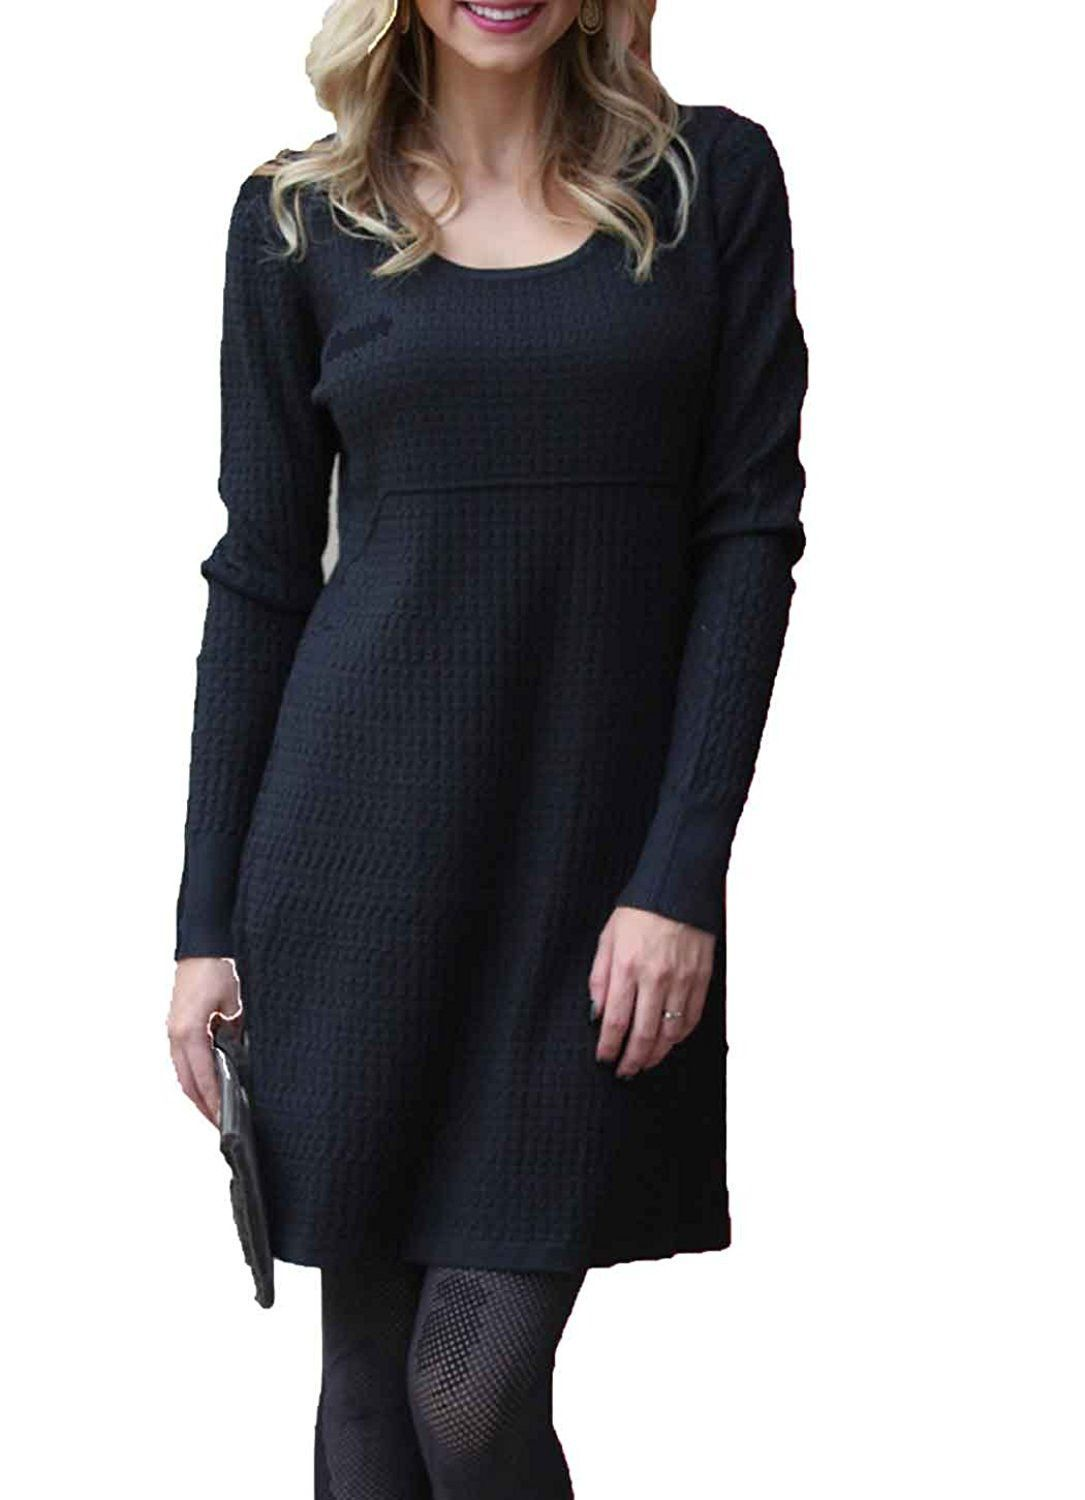 Angie womenus knit long sleeve sweater dress black products